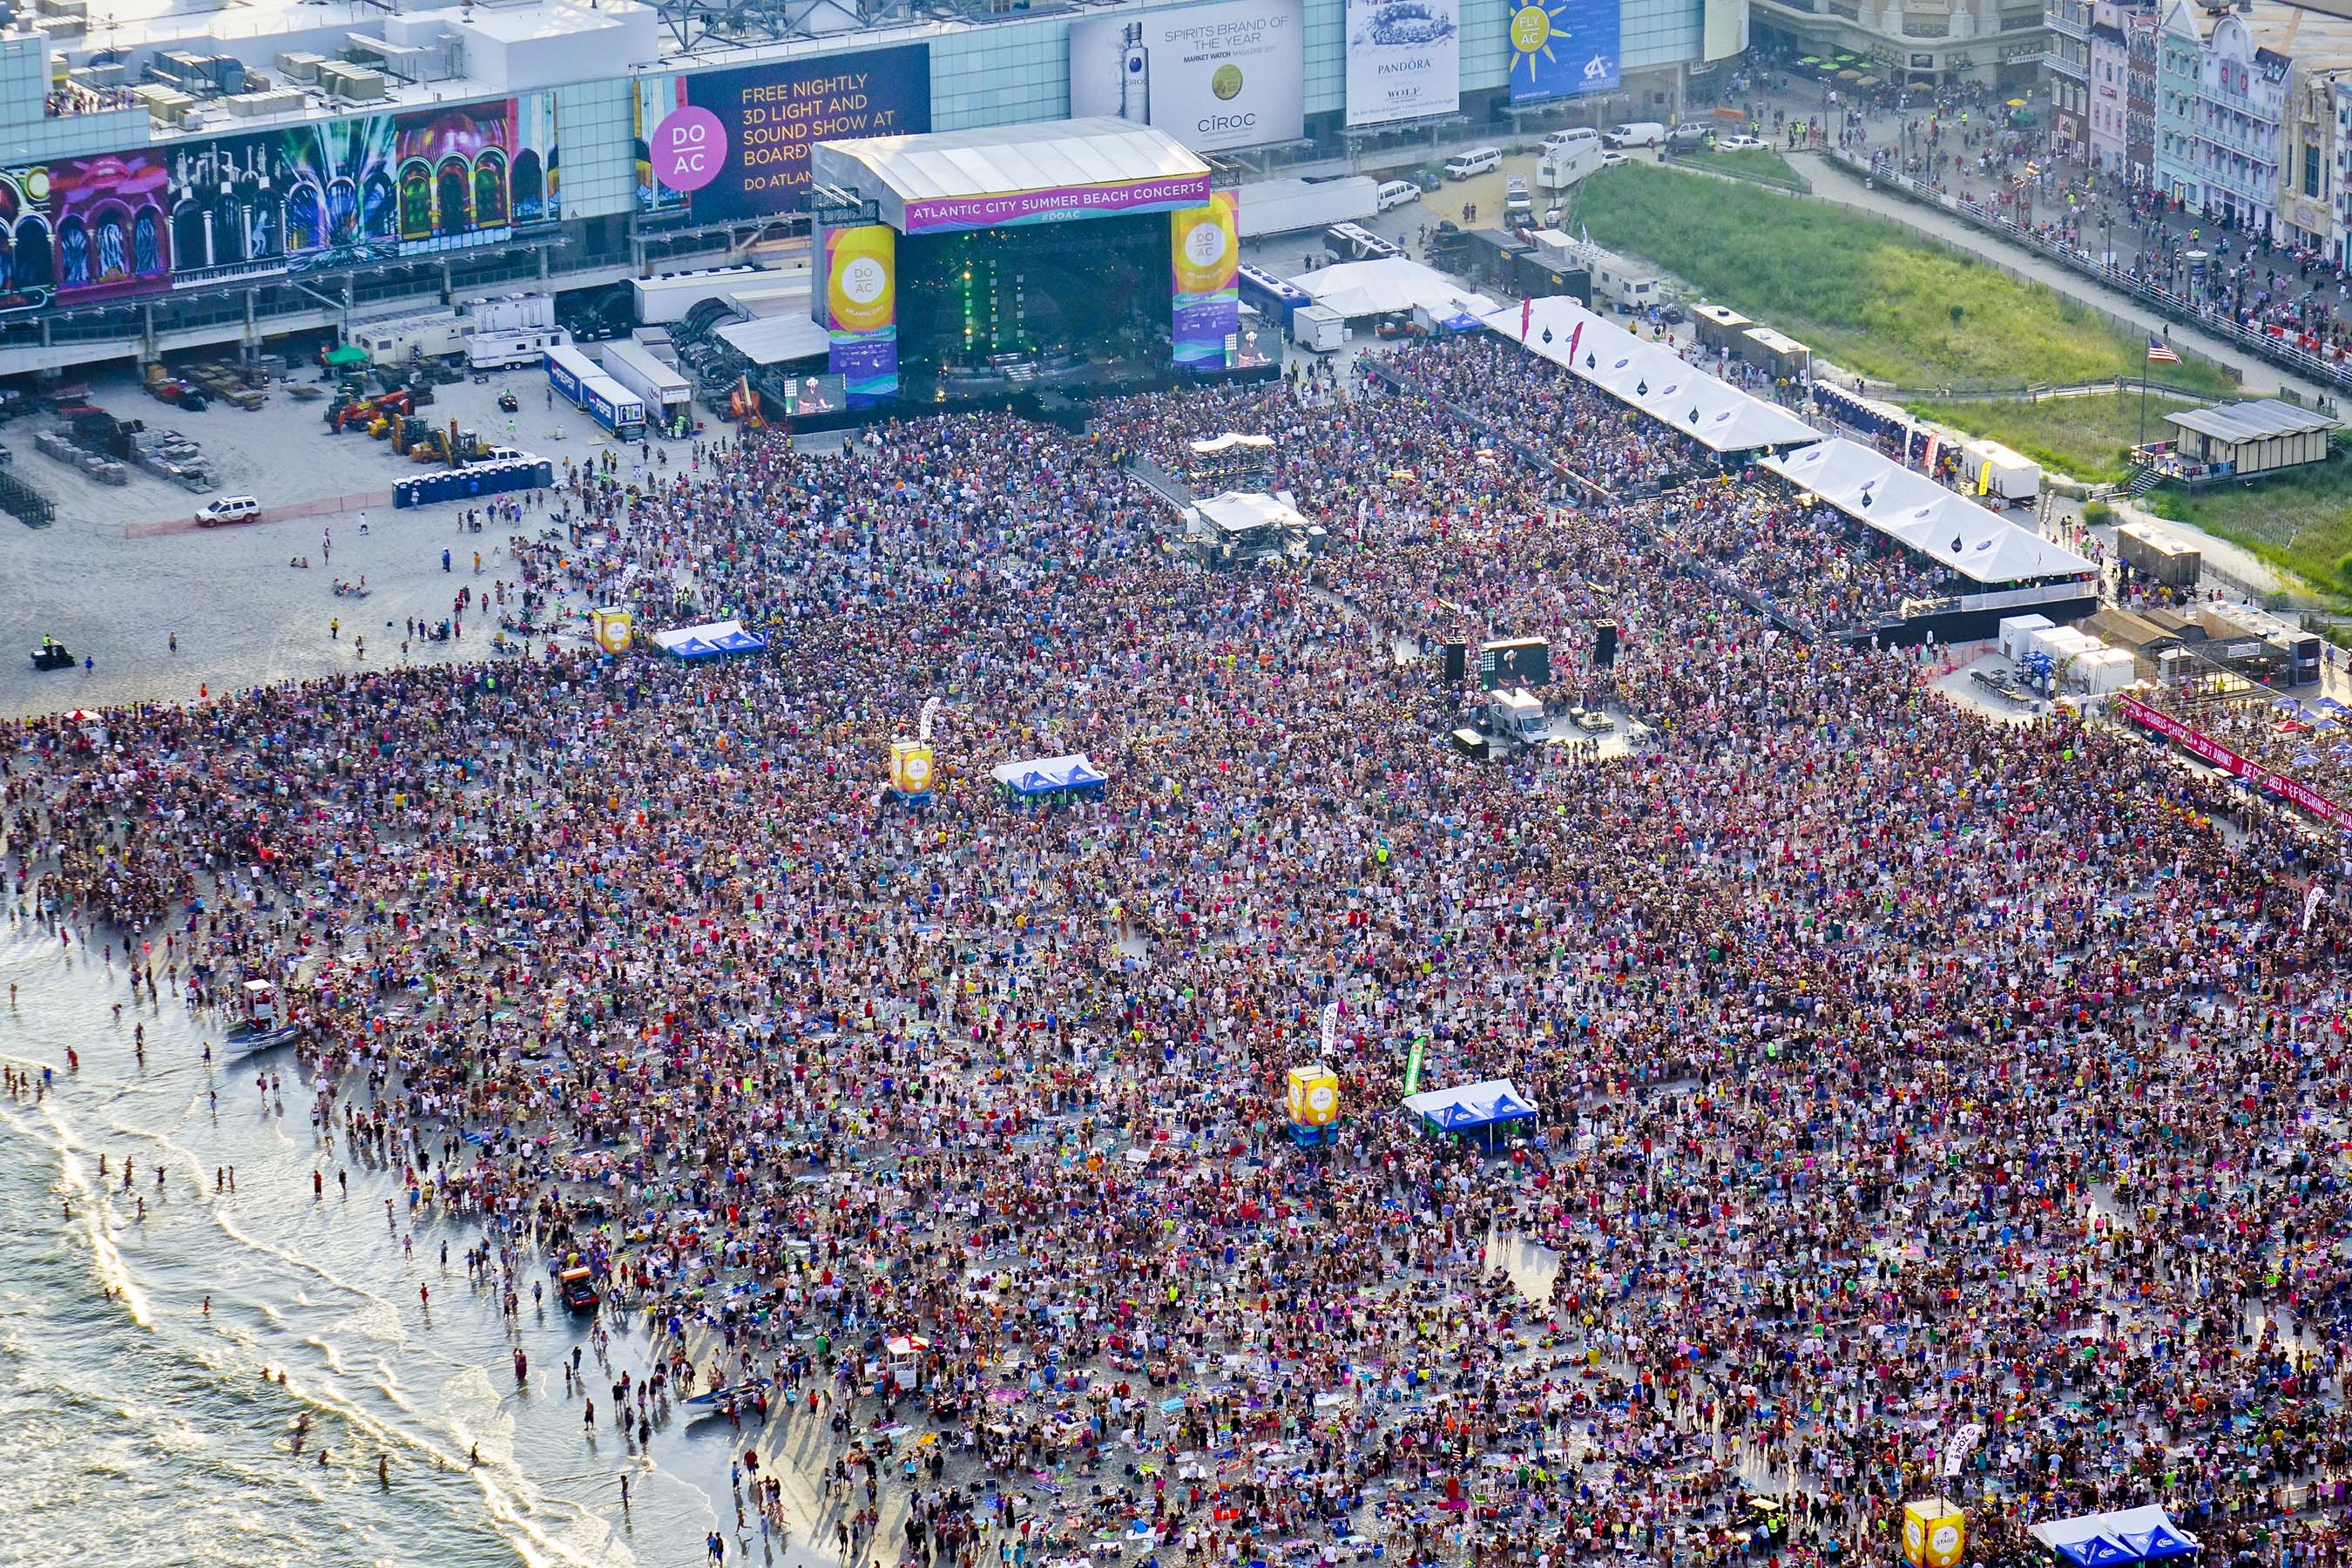 More than 65,000 people attended a free beach concert with Blake Shelton in Atlantic City, July 31, 2014. Photo credit: Bob Krist/ACA